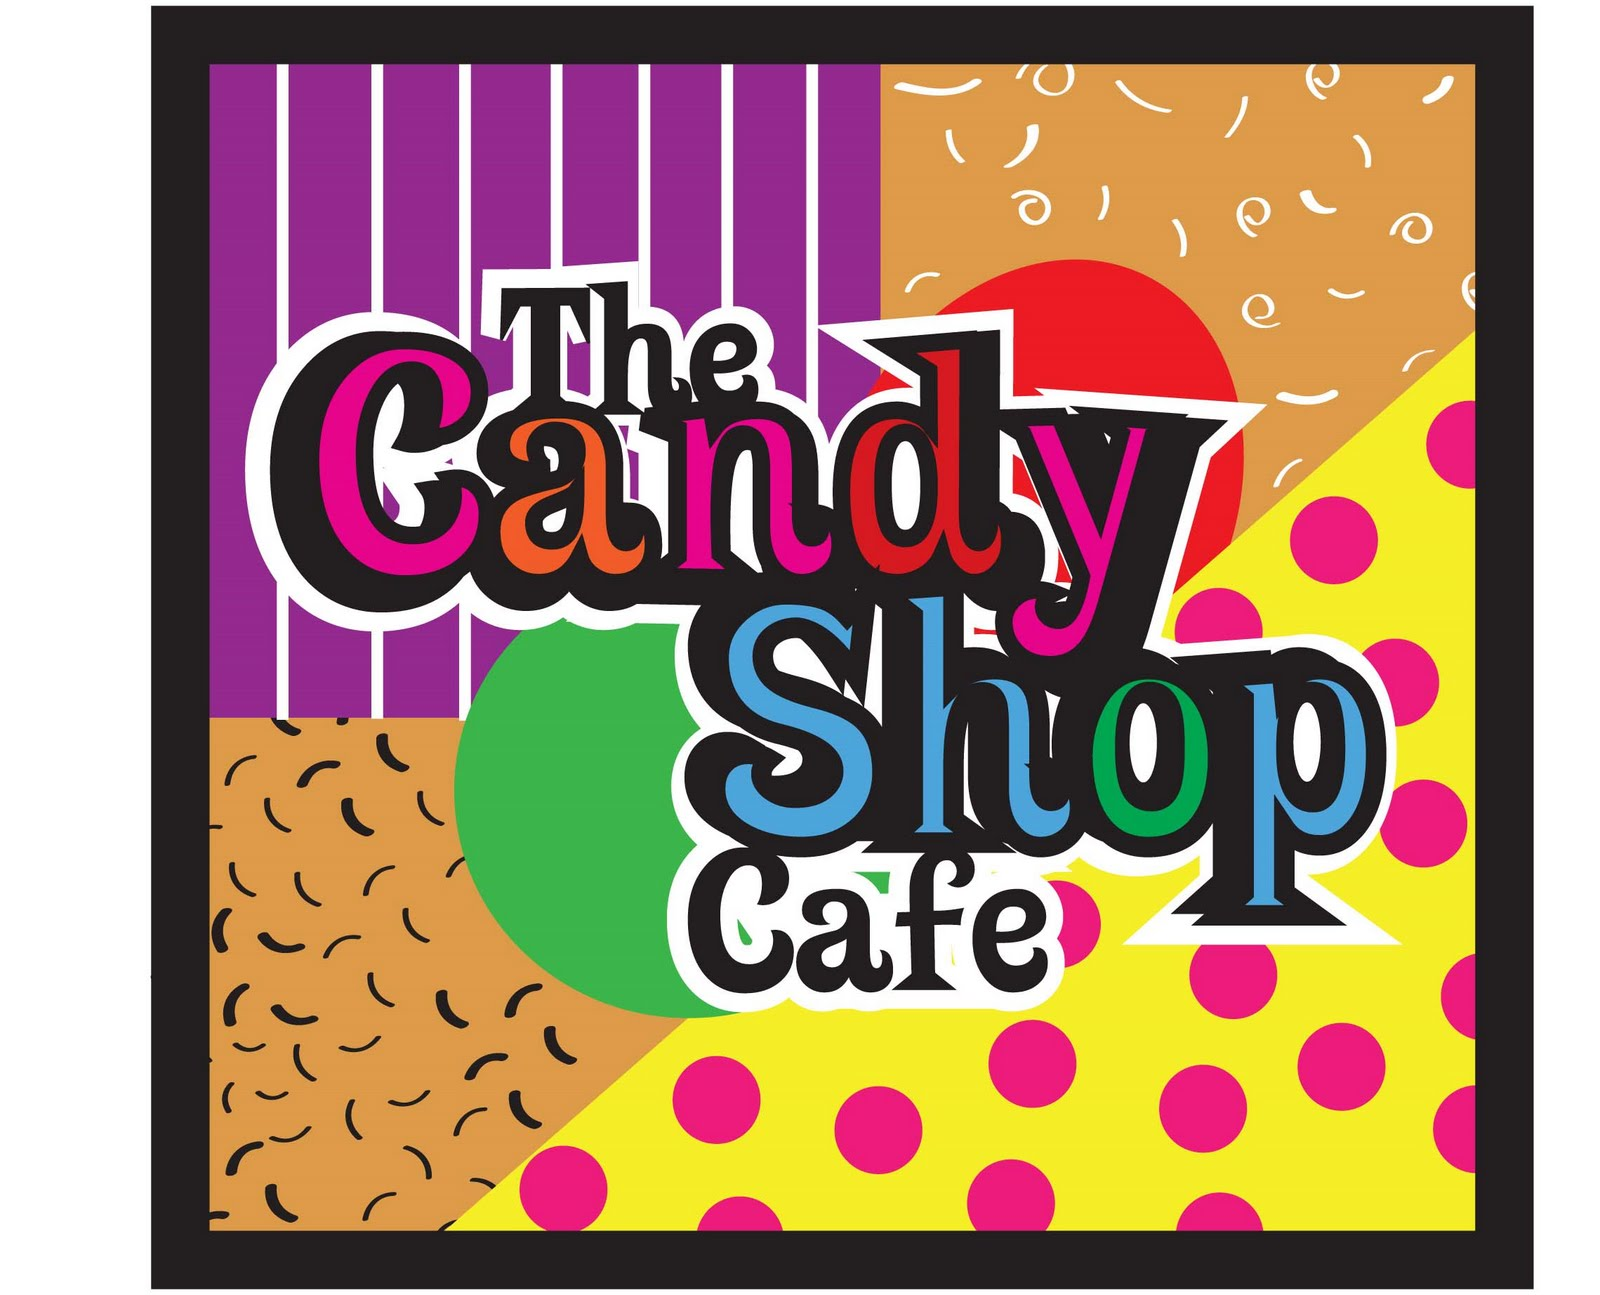 The+Candy+Shop+Cafe+logo2 History Mission Style Home Design on southwest style home design, frank lloyd wright home design, art deco home design, queen anne home design, victoria style home design, prairie style home design, lodge style home design, spanish home design, living room home design, craftsman style home design, tudor home design, french country style home design, colonial style home design, cottage style home design, modern home design, traditional home design, transitional style home design, furniture home design, shaker home design, victorian style home design,